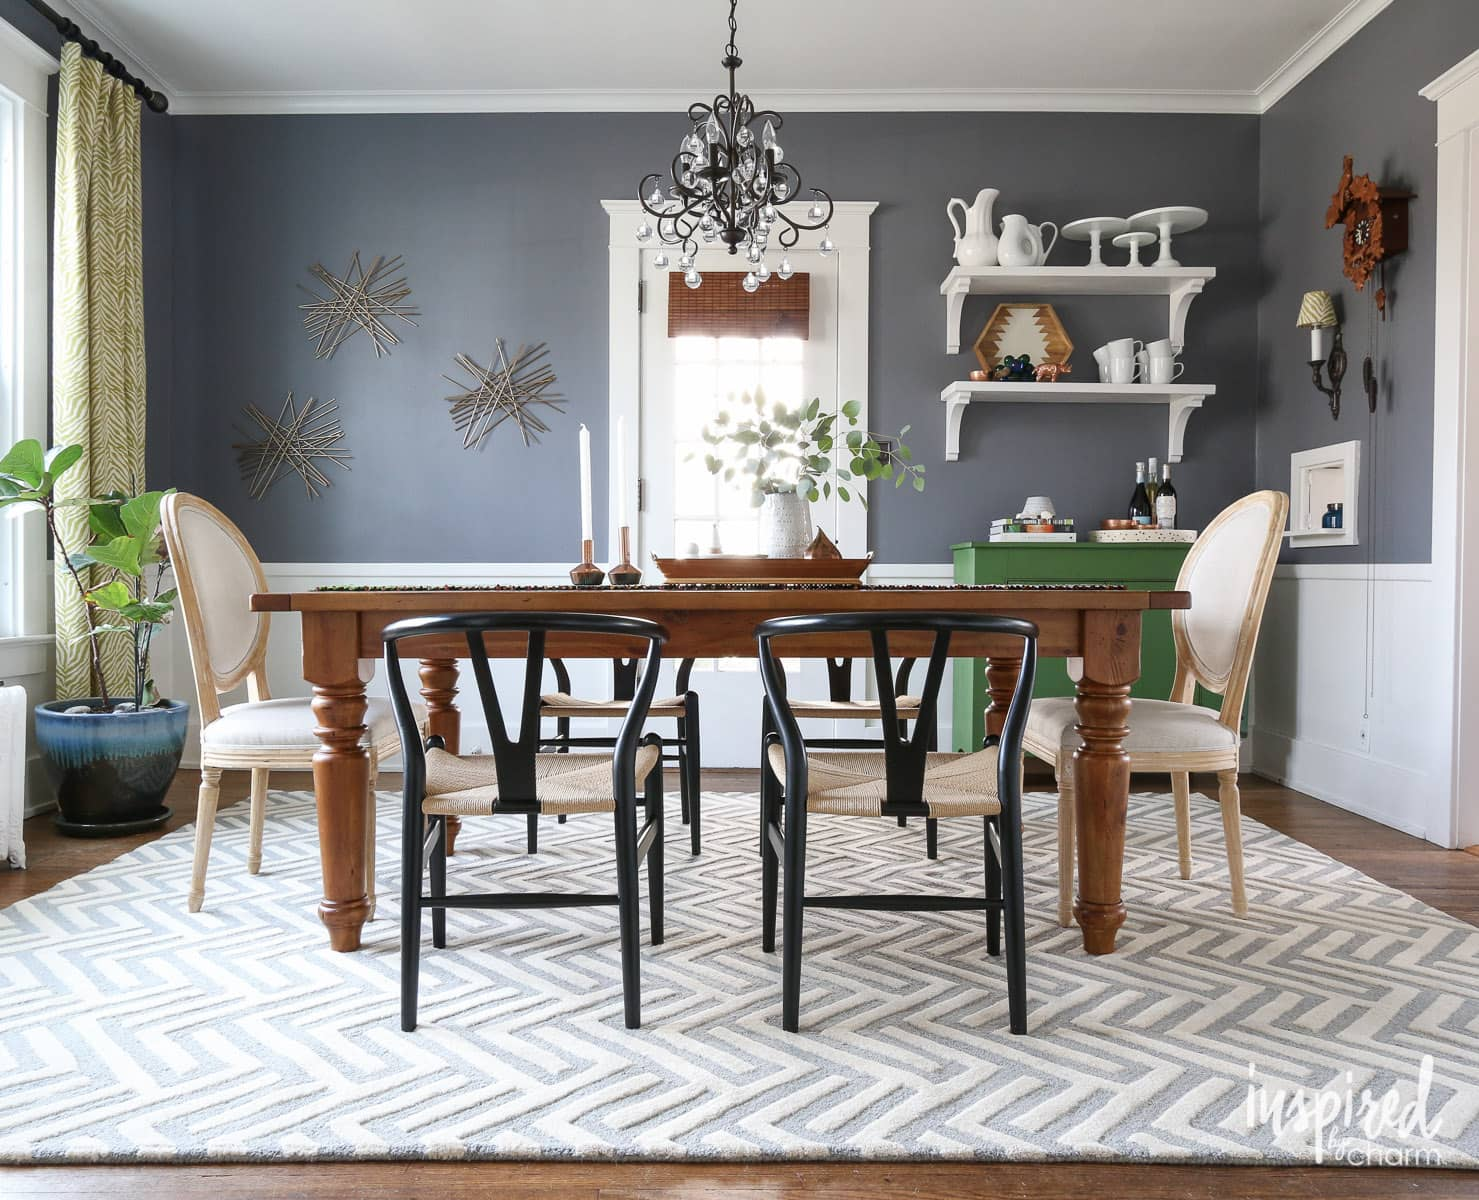 living room rugs what color should i paint my with a tan couch new rug for the dining inspiredbycharm com